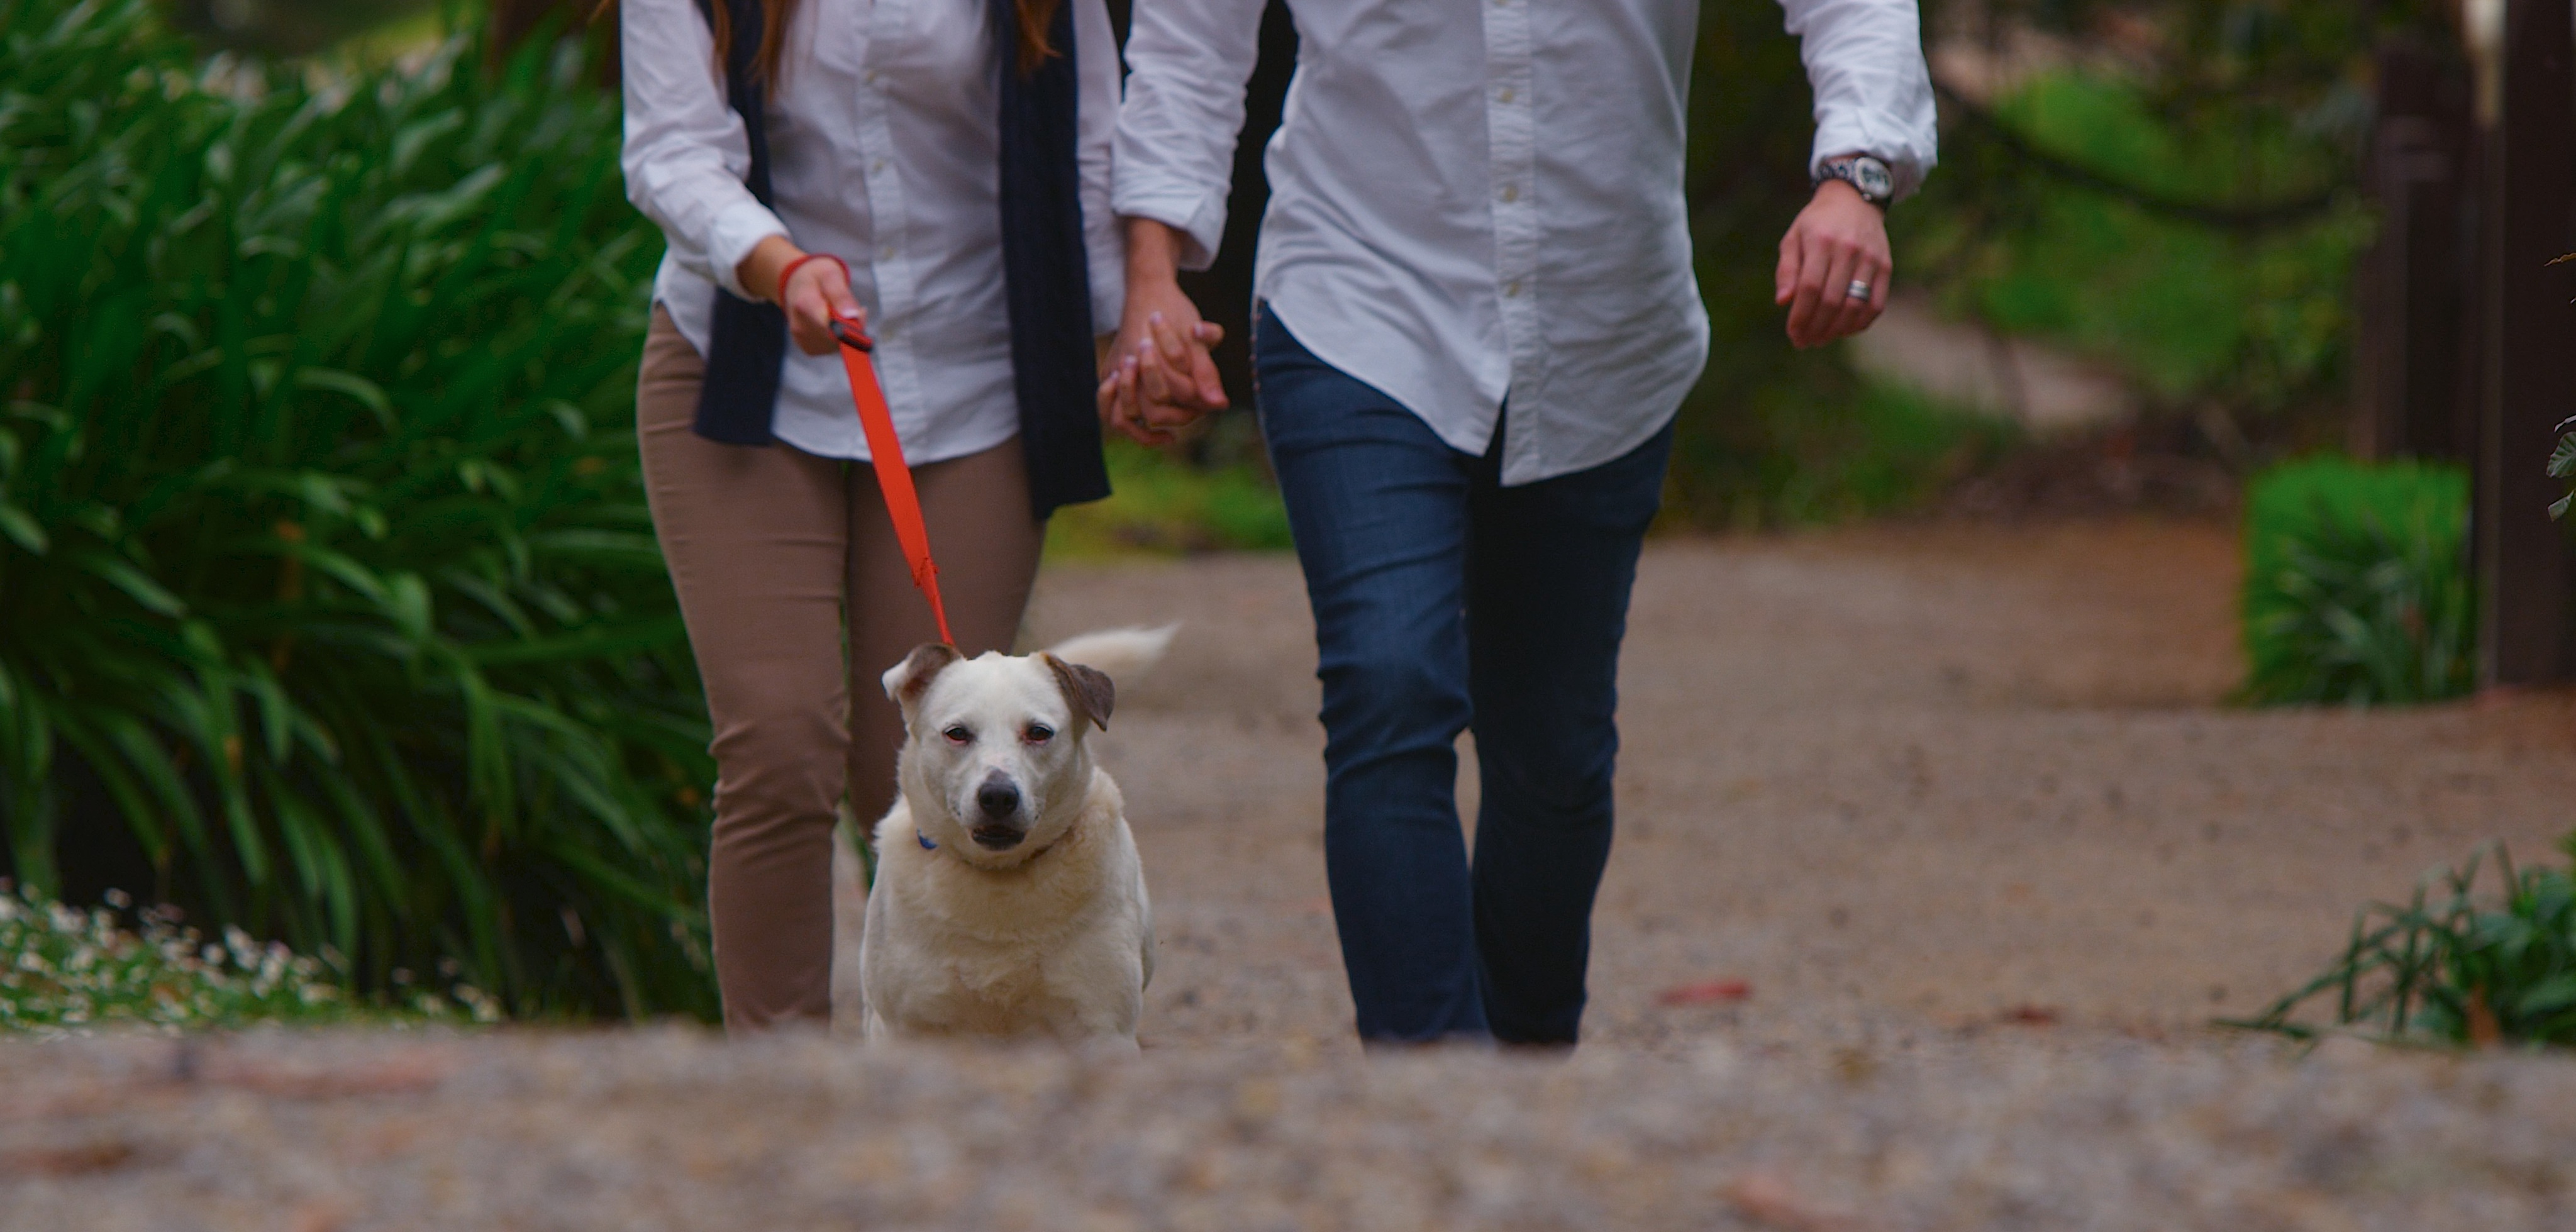 Loads of lovely walks for your dog gallery image